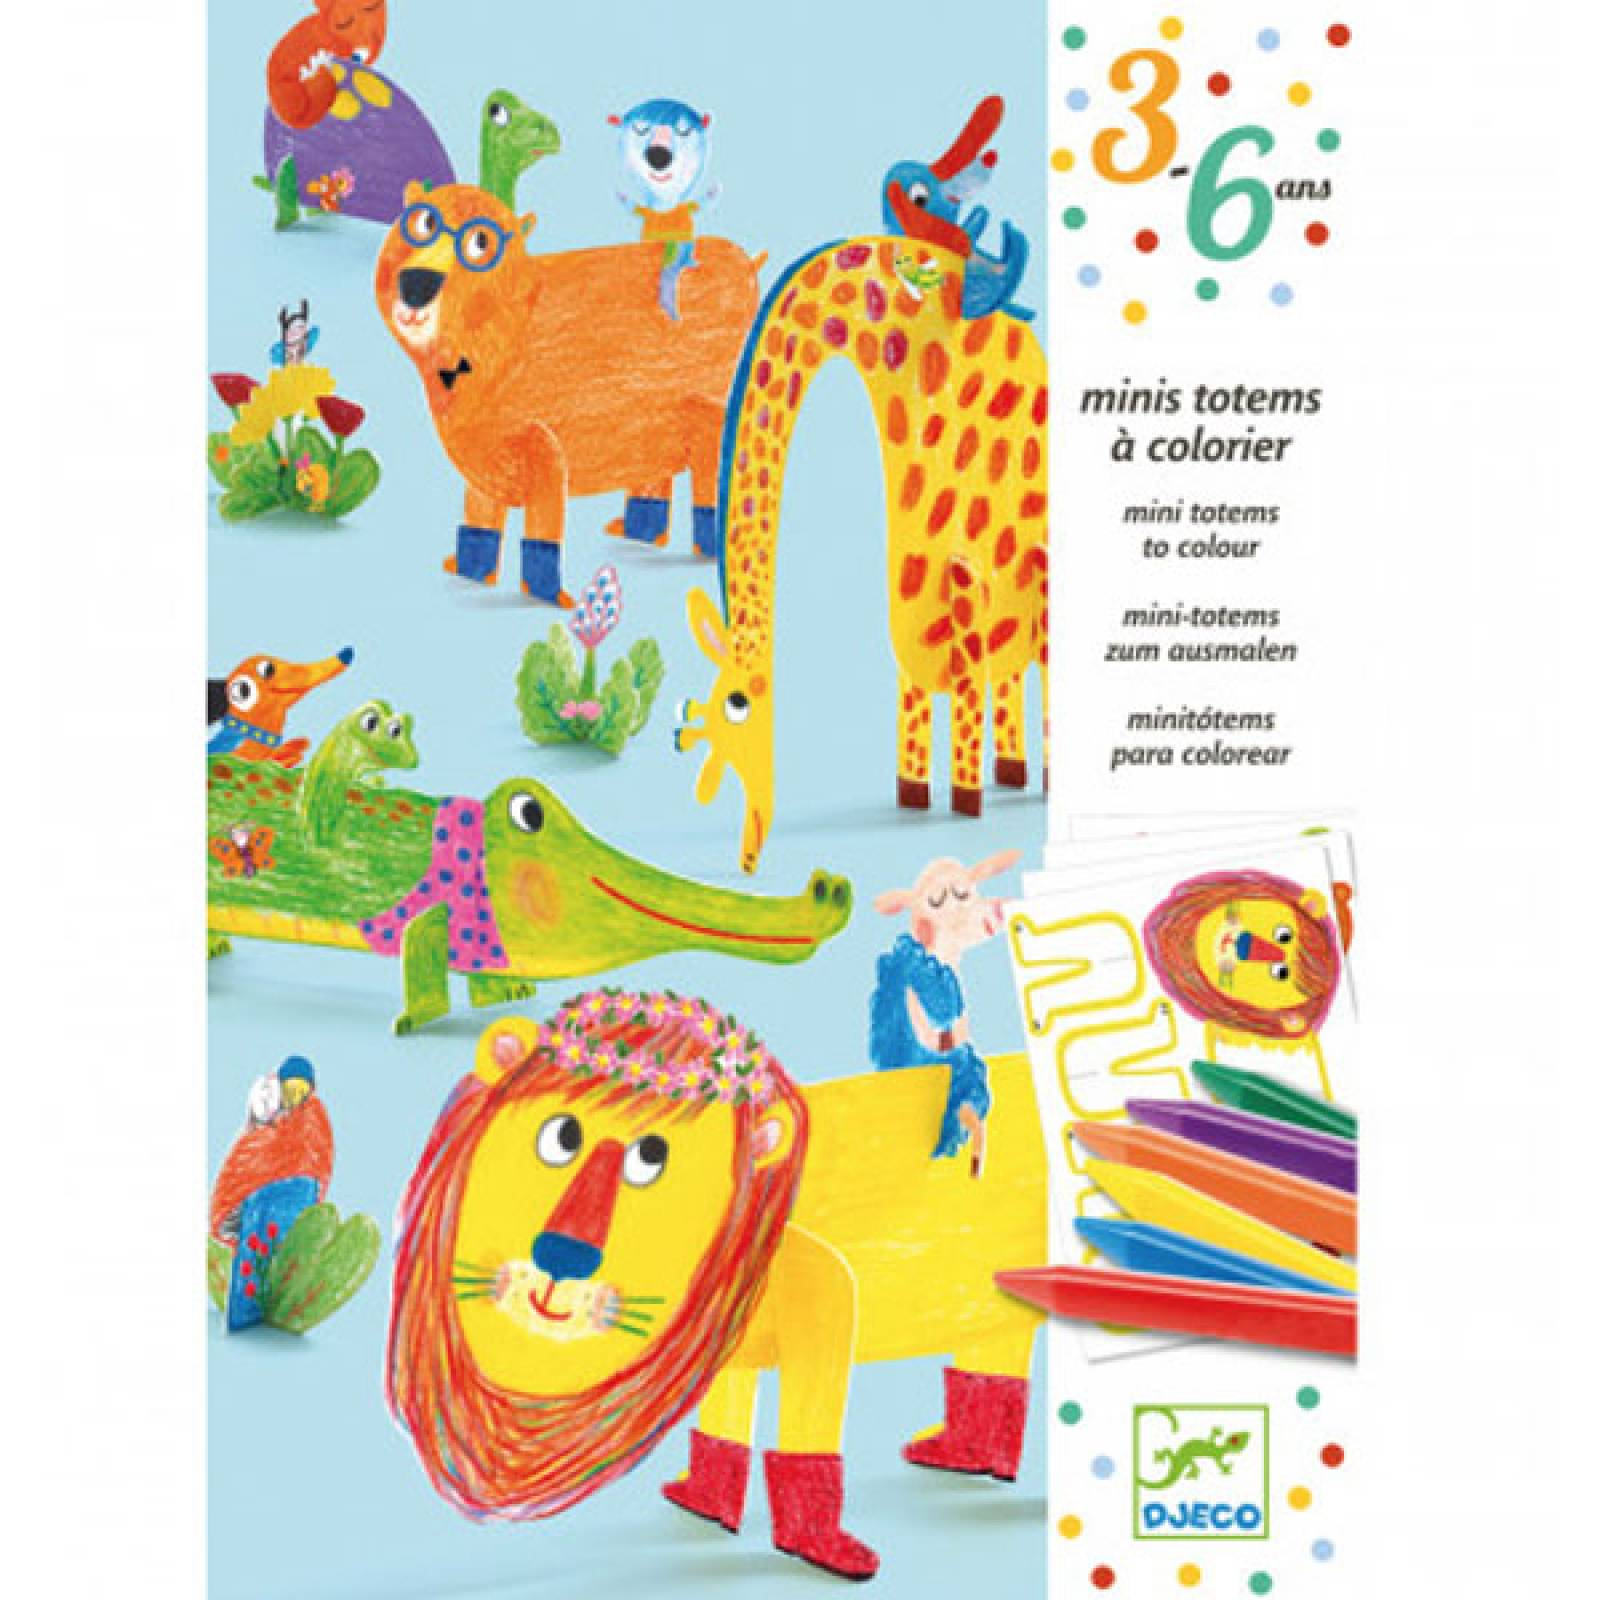 All Friends Colouring Modelling Kit By Djeco 3-6yrs